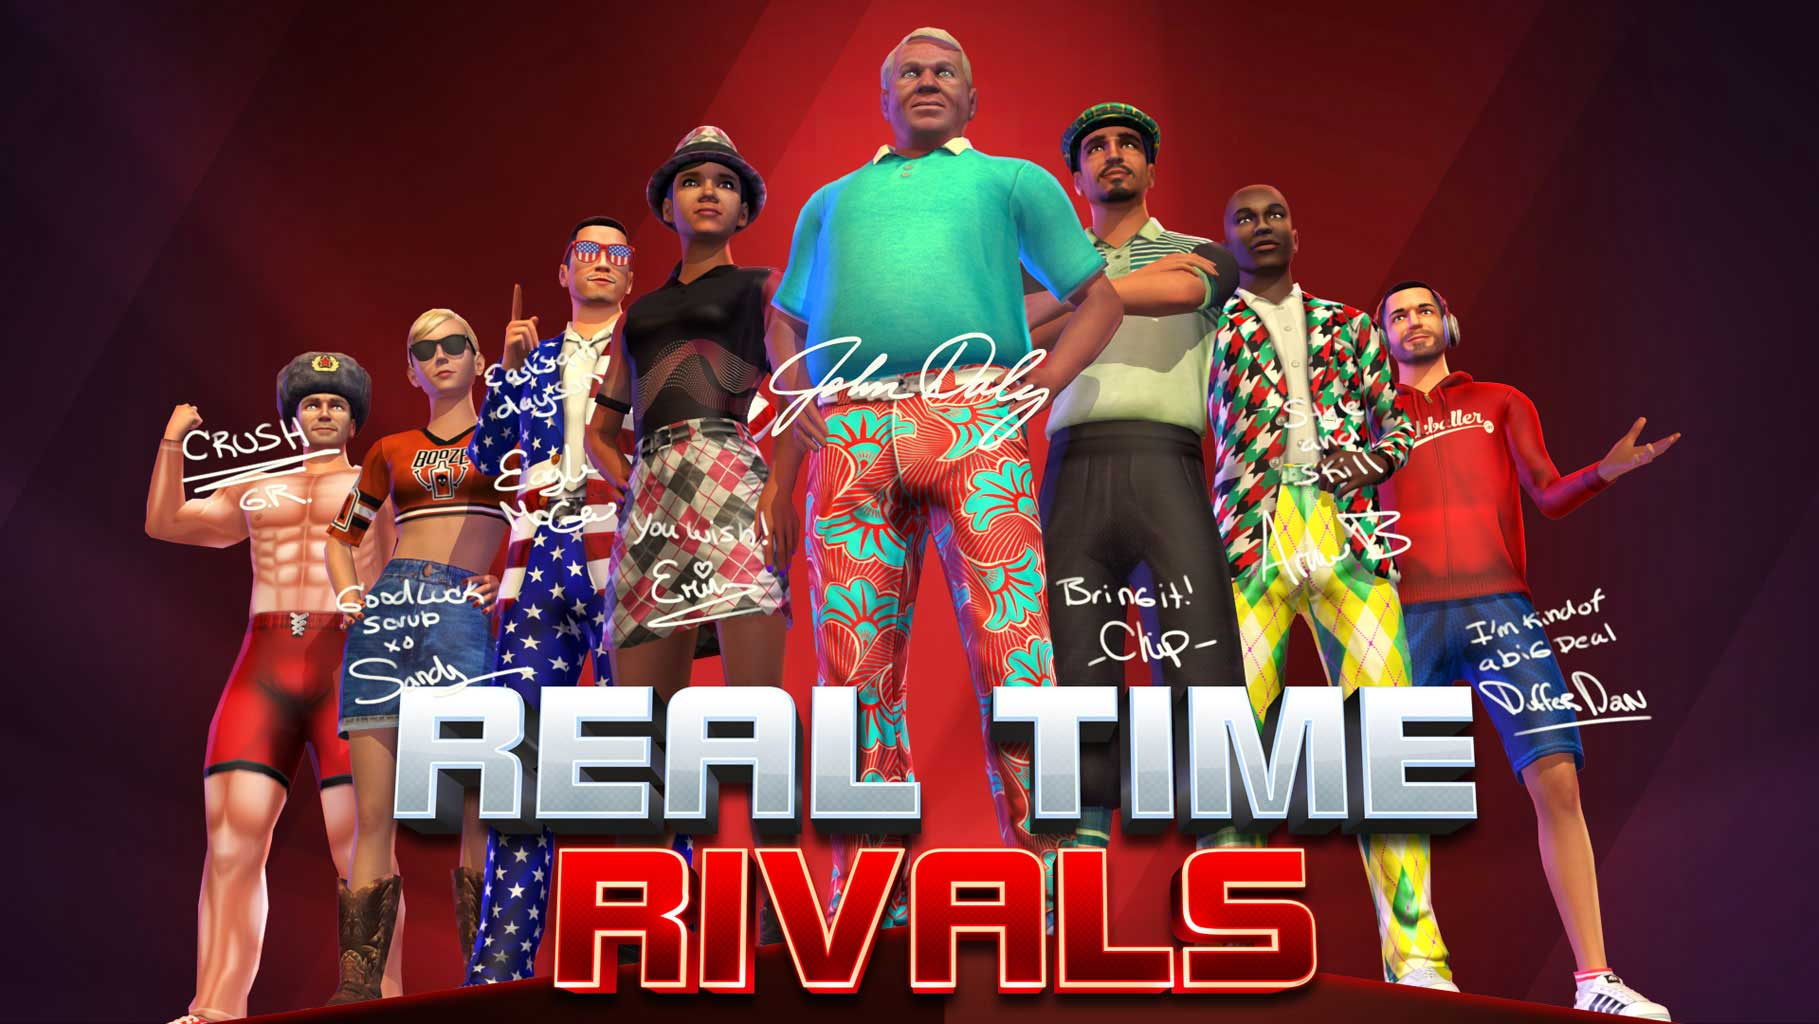 Real Time Rivals Golden Tee Arcade Game | Game Room Guys